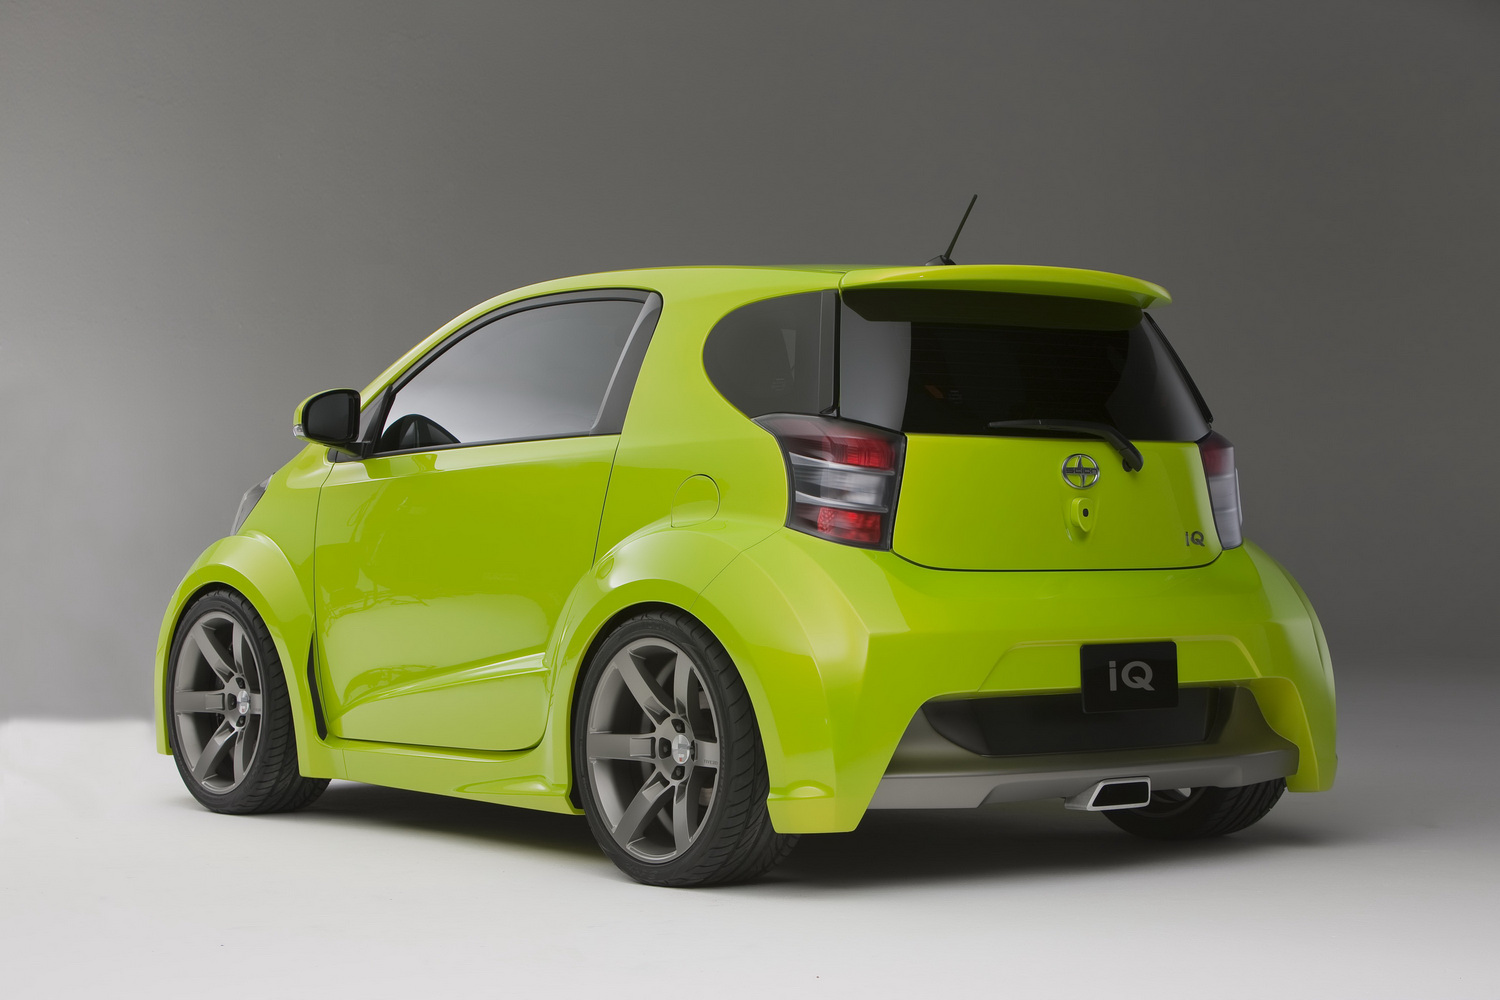 Car Reviews Scion Reveals Iq Concept Pimped By Five